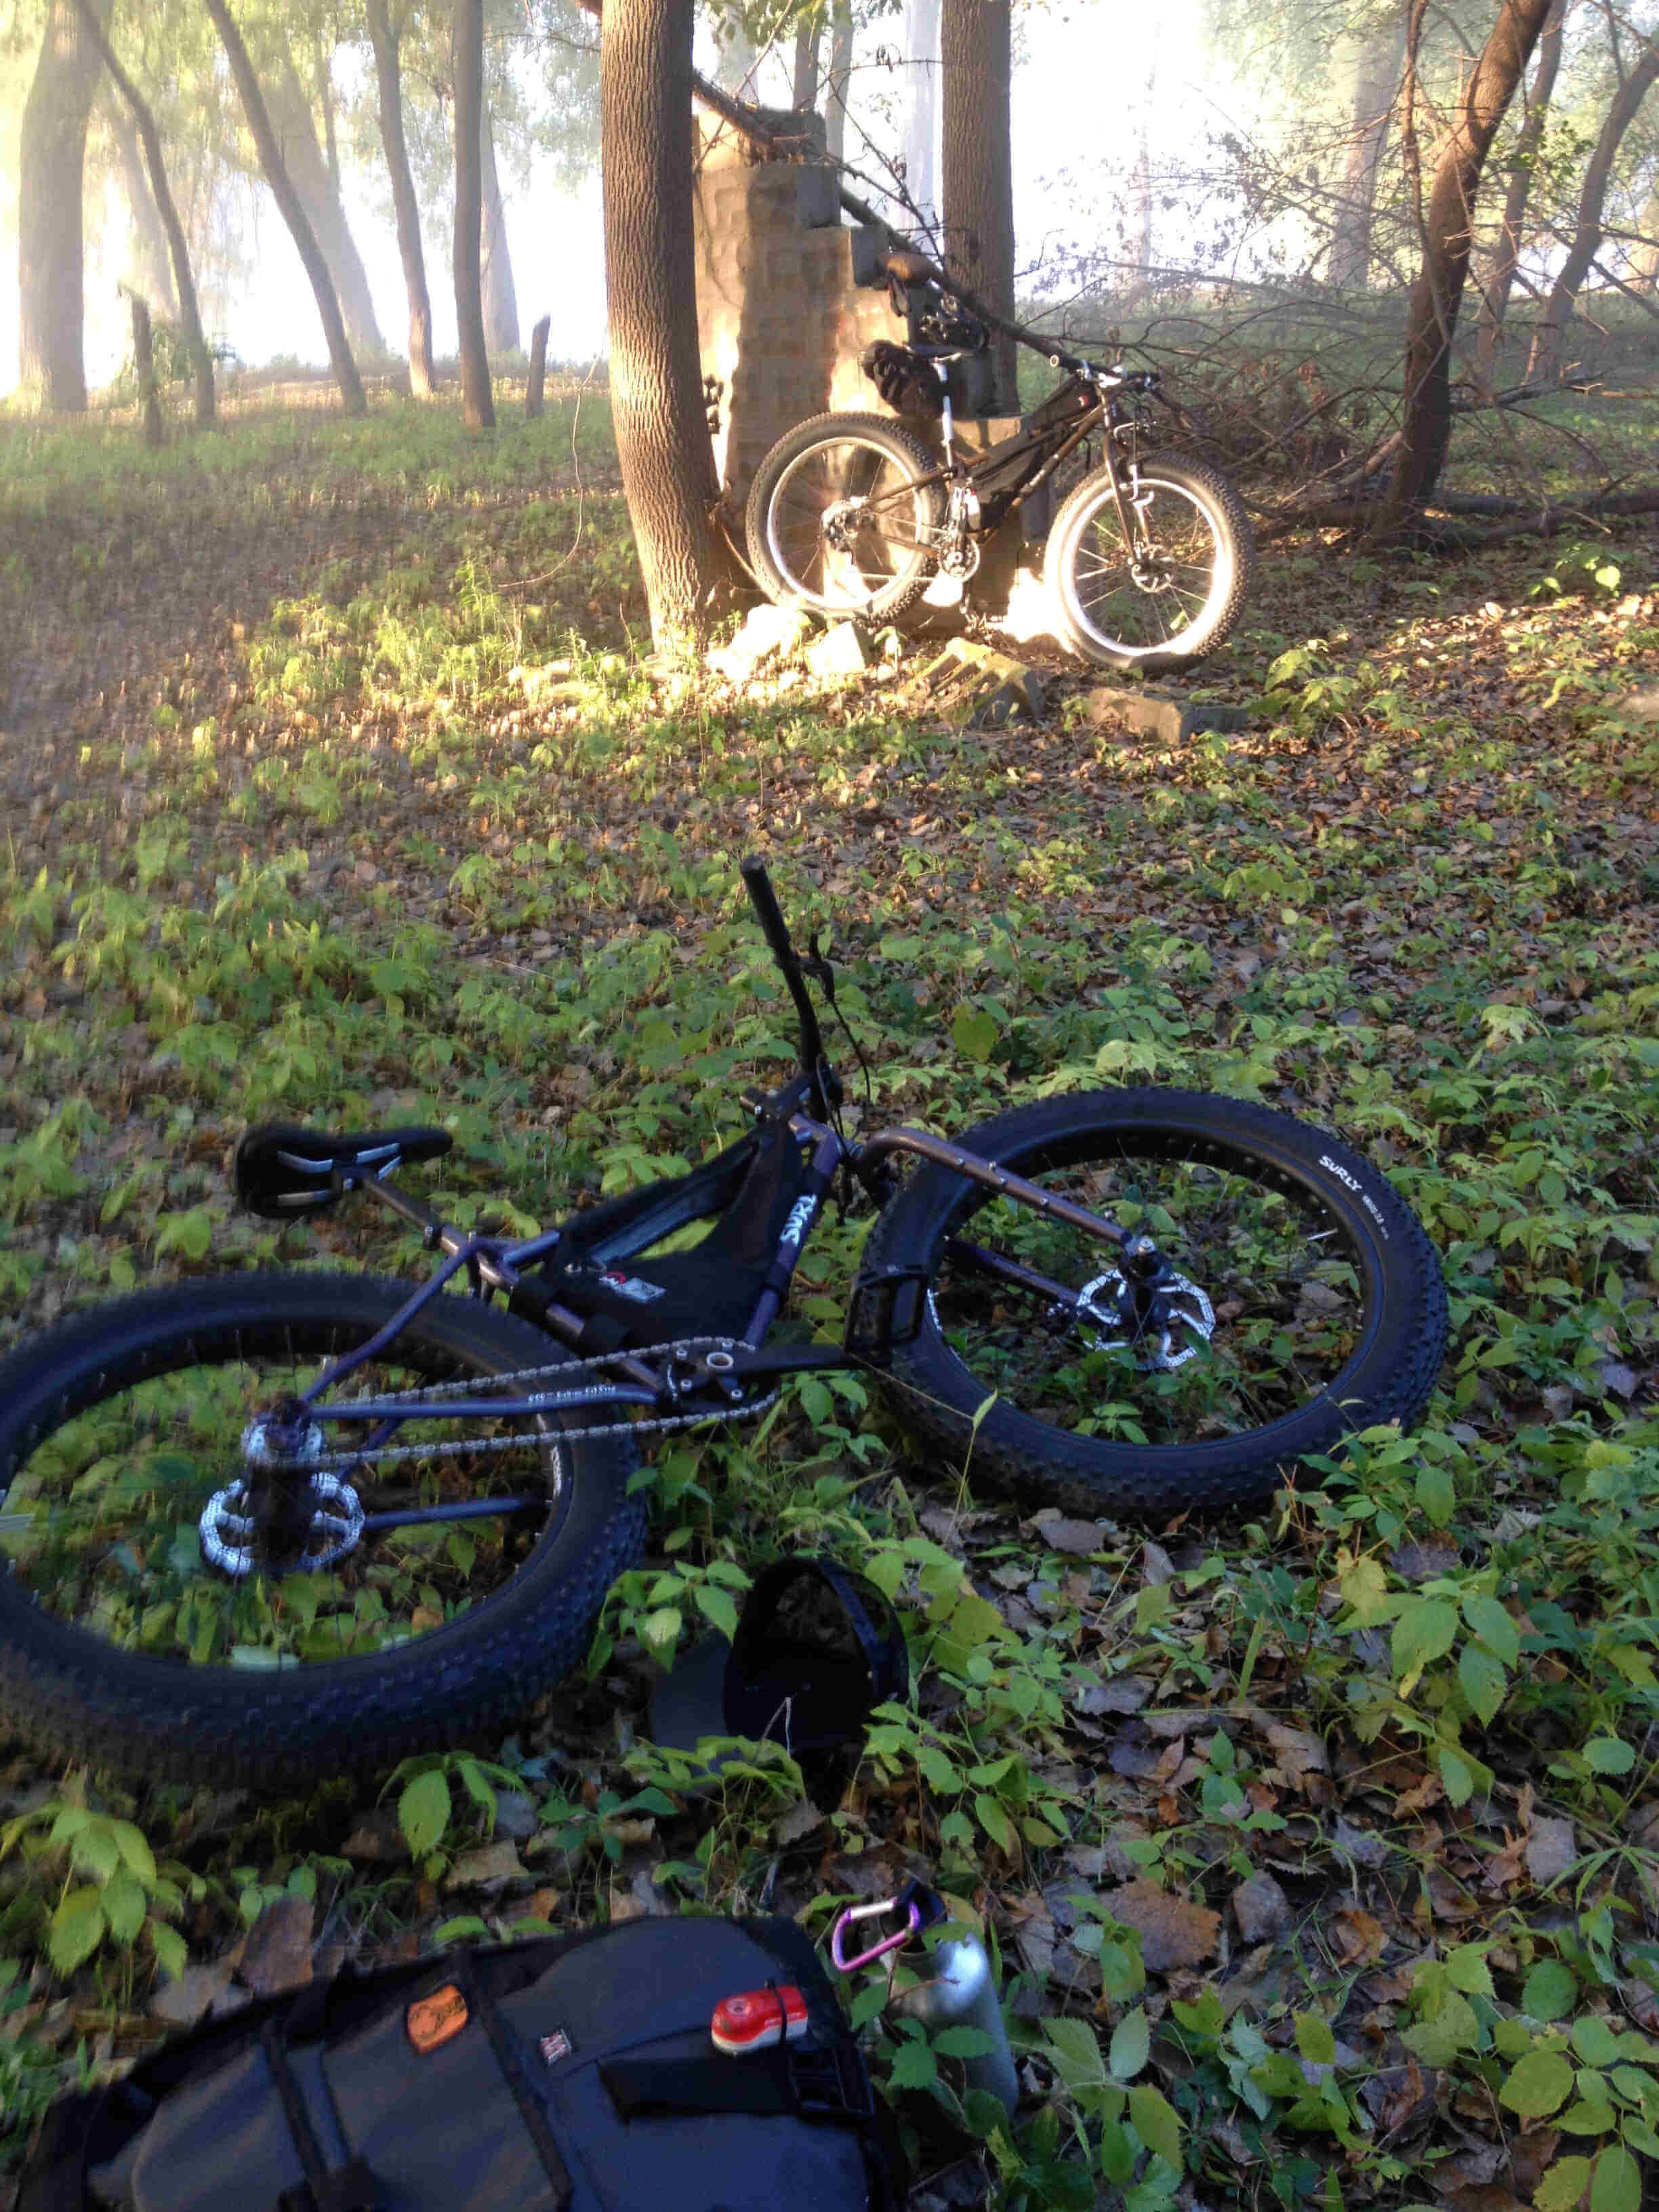 Downward, right side view of a Surly Pugsley fat bike, loaded with gear, laying on a weedy clearing in the woods